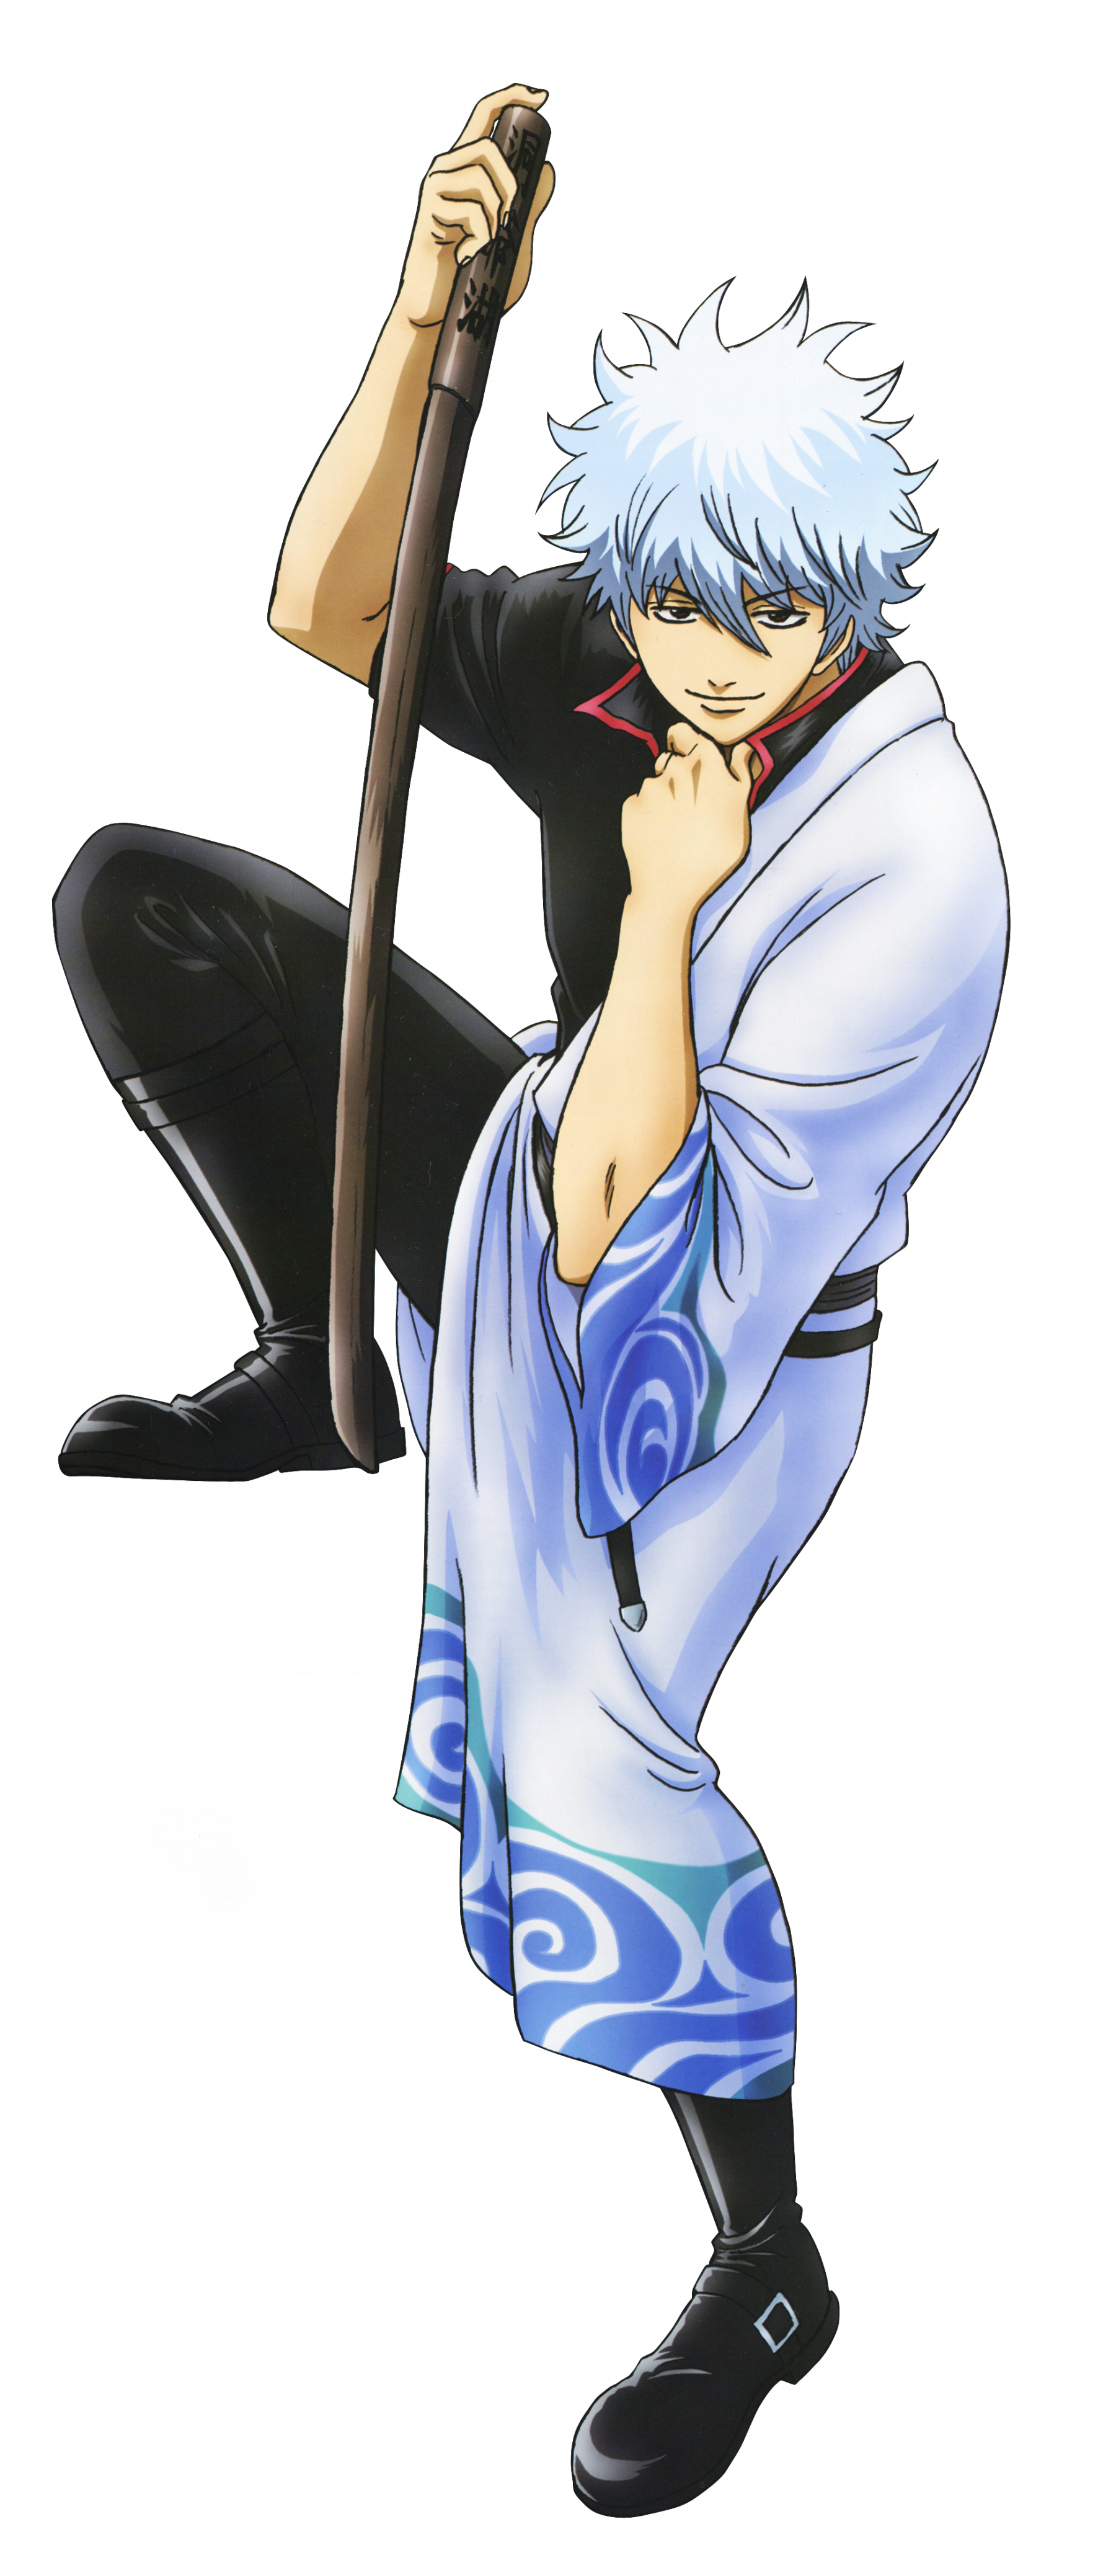 http://img3.wikia.nocookie.net/__cb20140205032251/gintama/images/e/e8/Gin_Gintoki.png